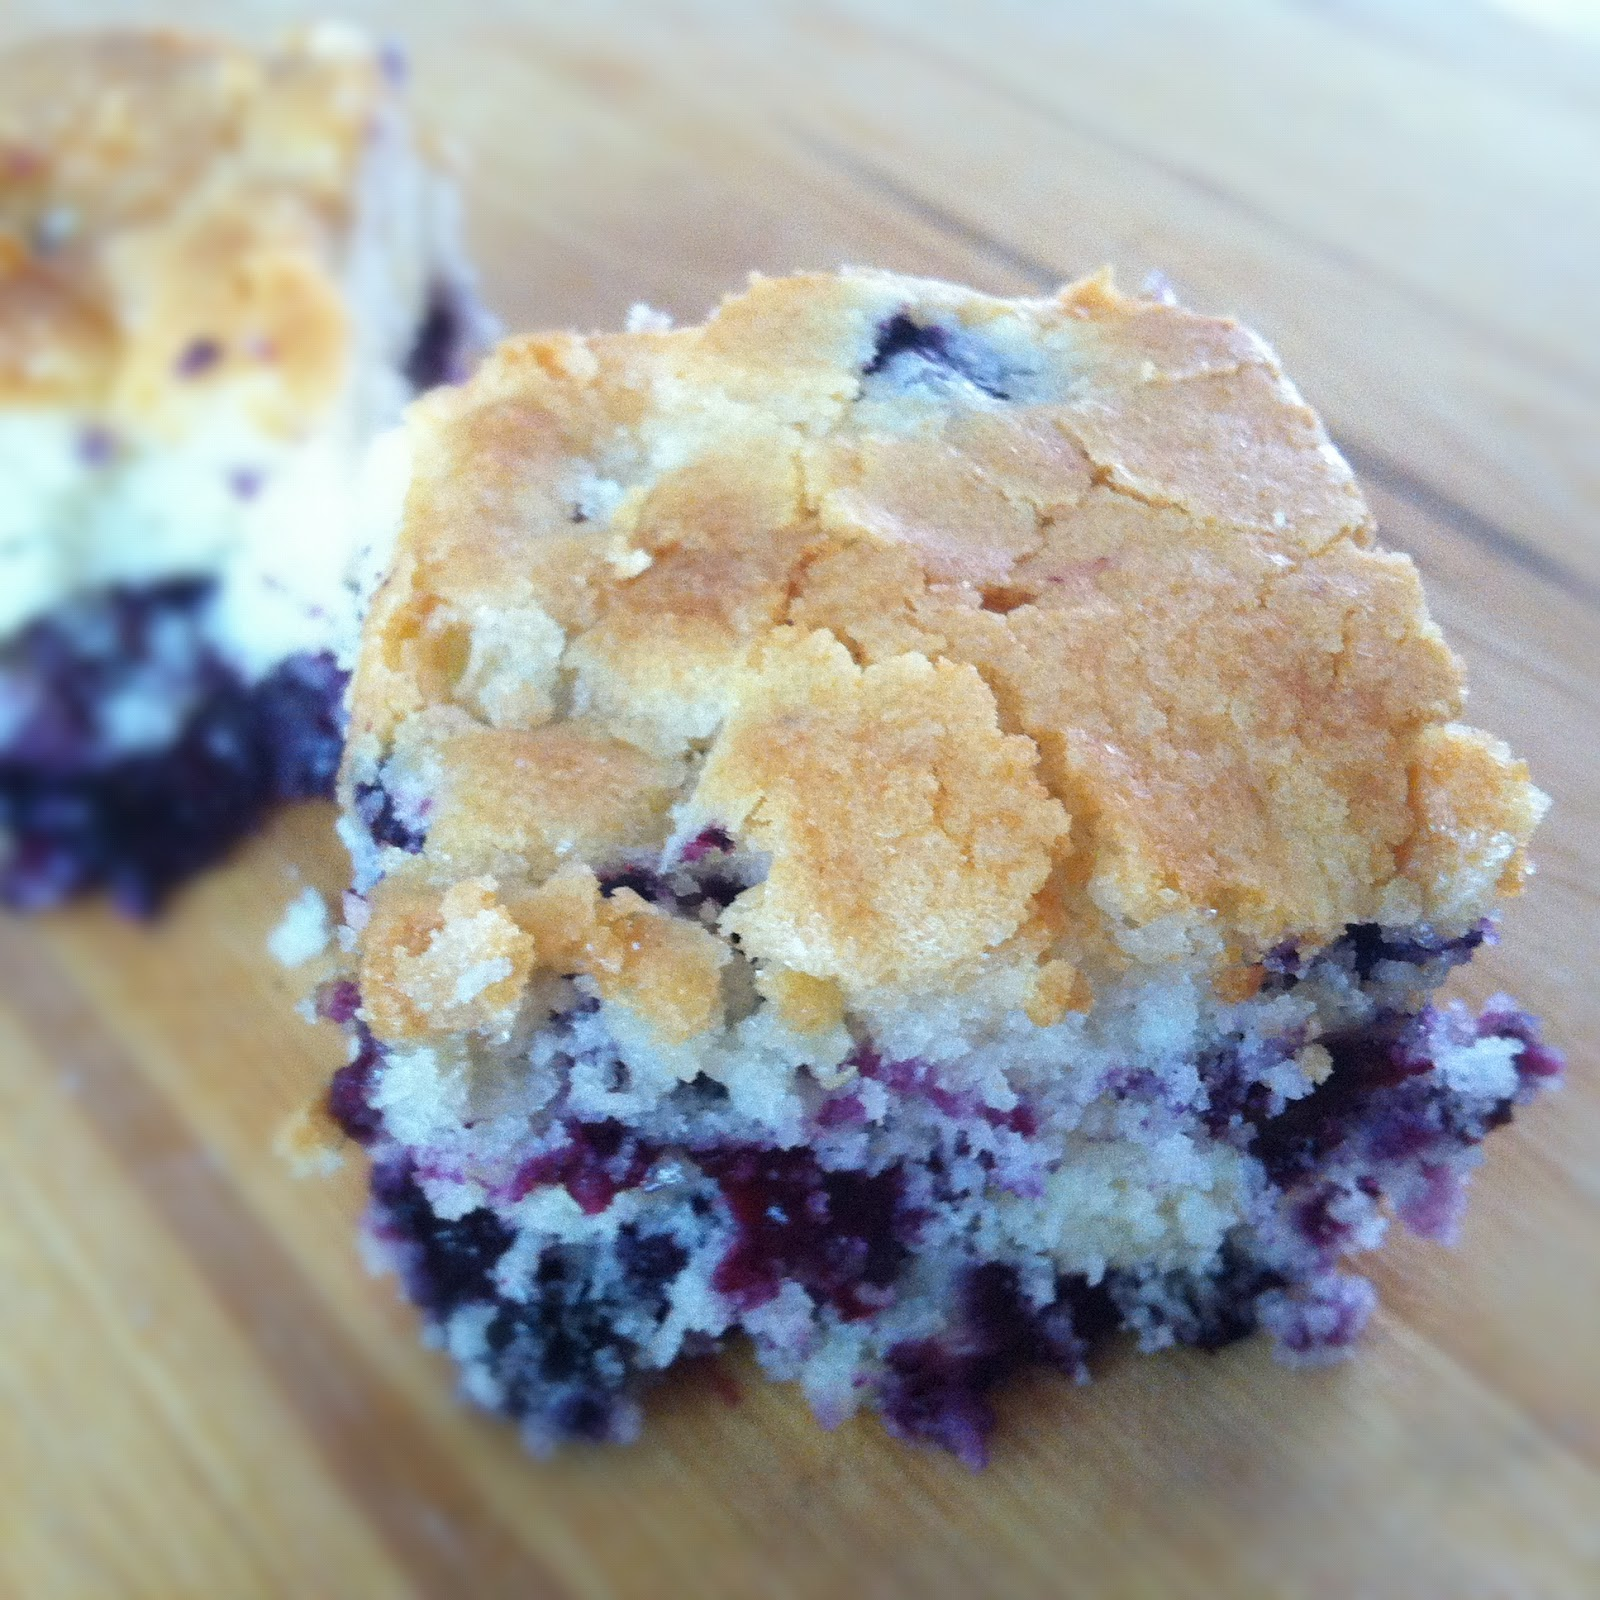 What's Cooking in the Burbs: Buttermilk Blueberry Coffee Cake